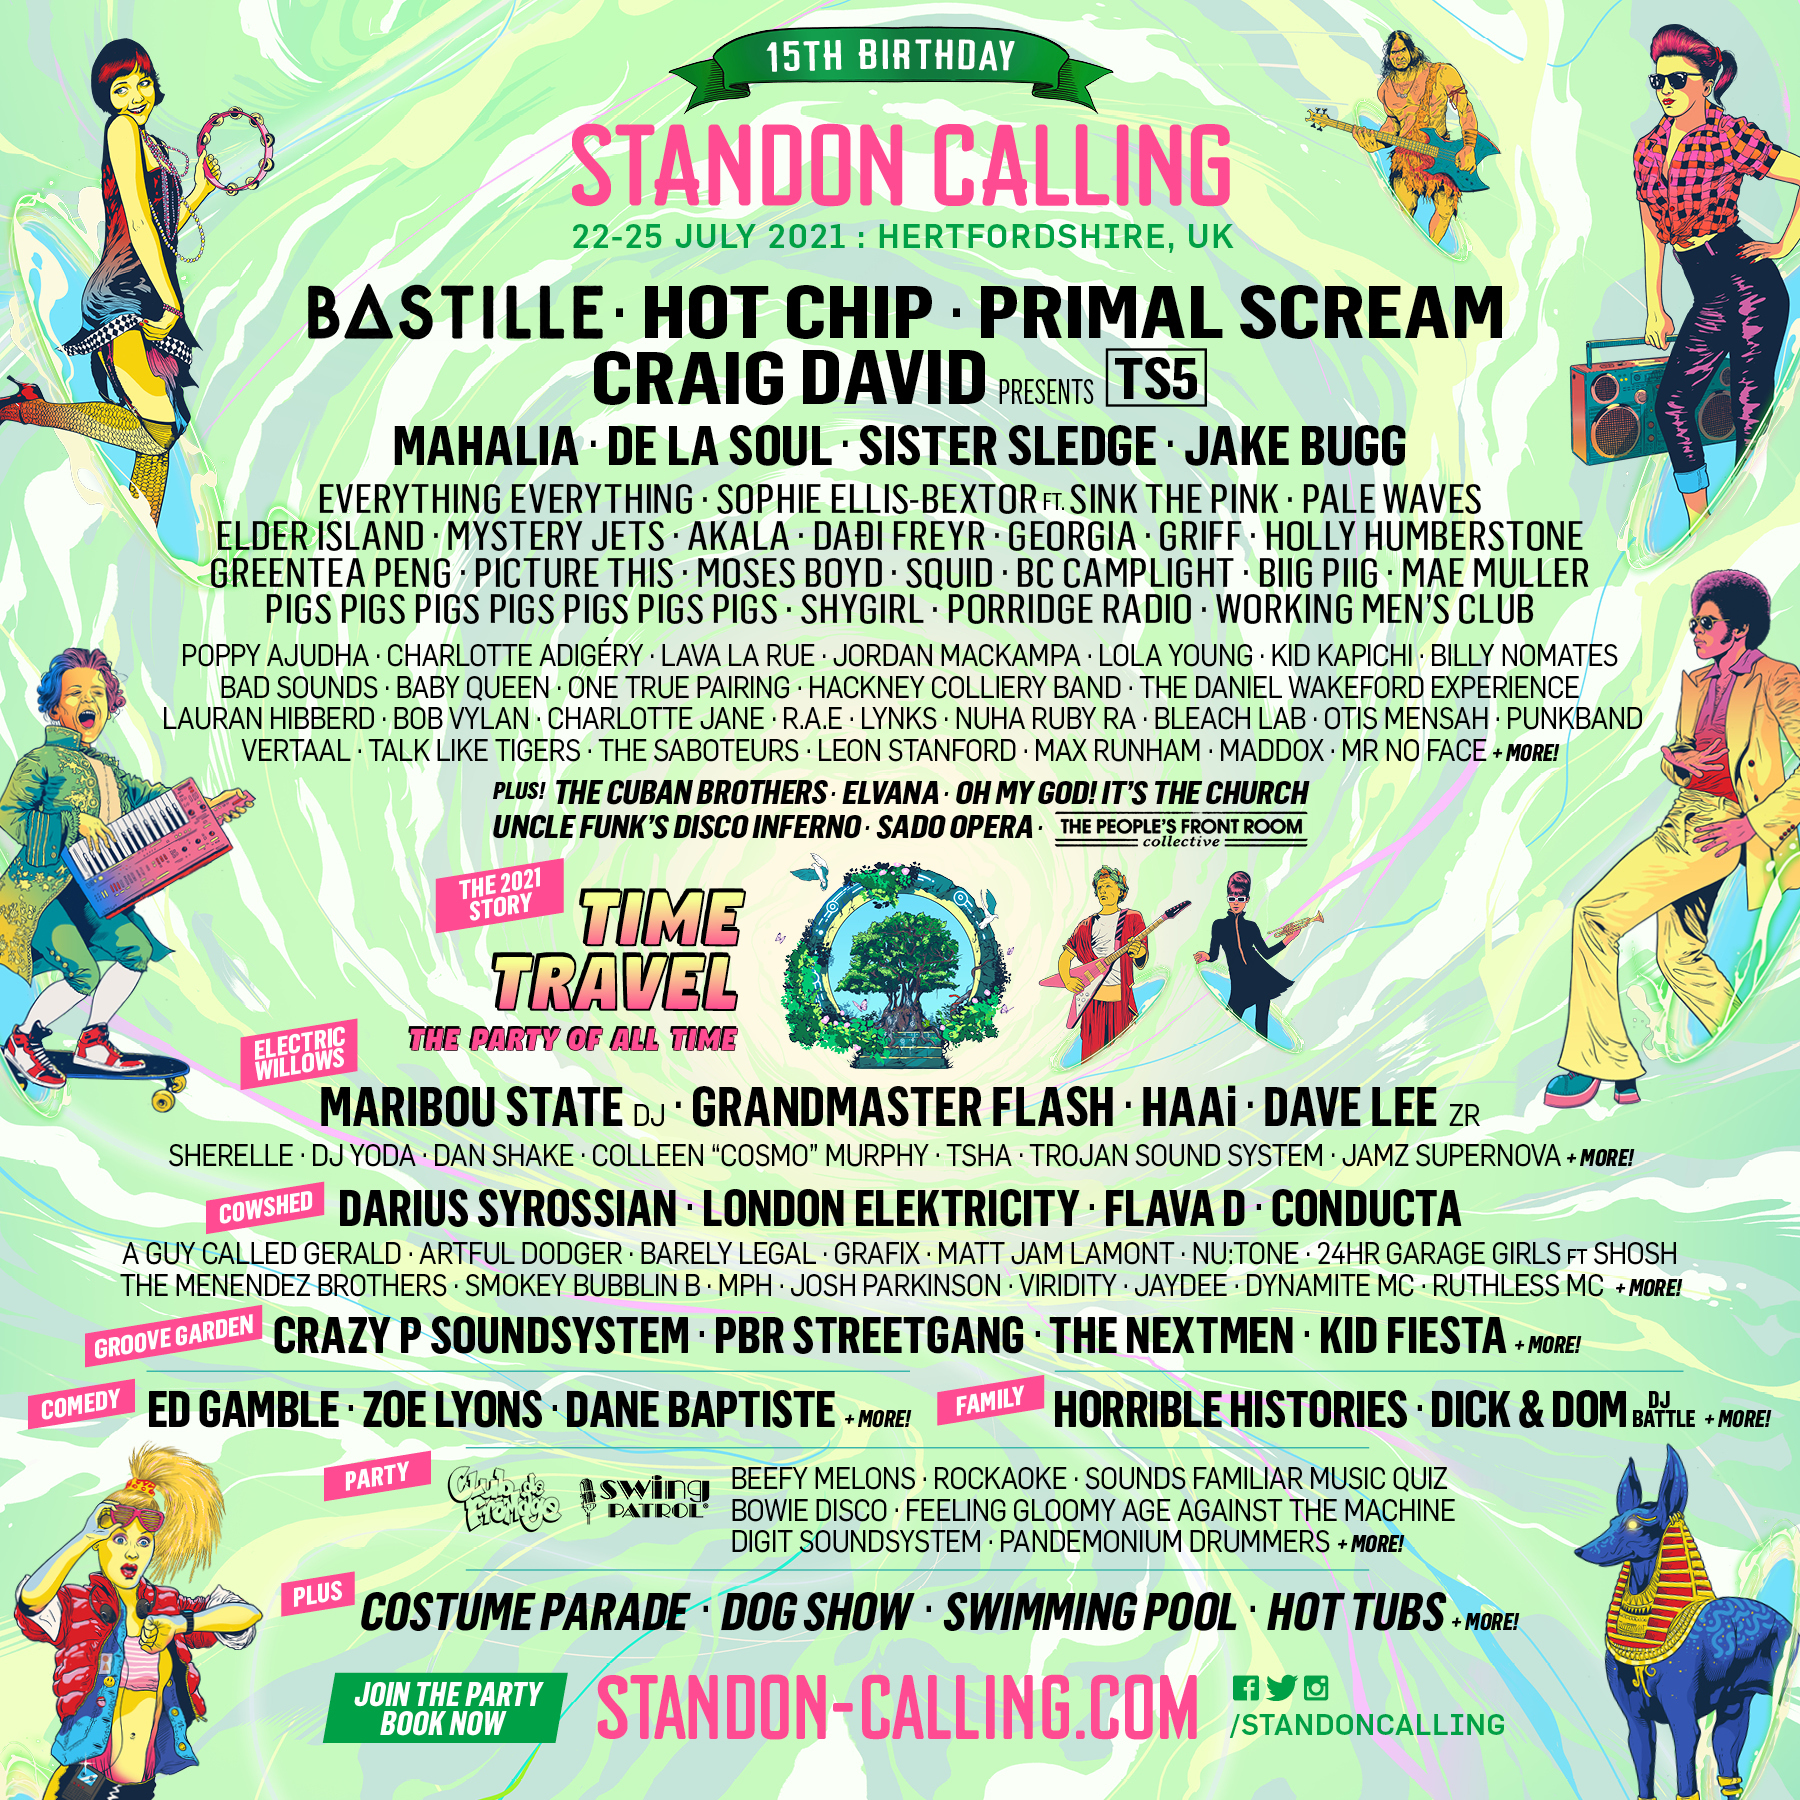 Standon Calling: New Music Just Announced! 11